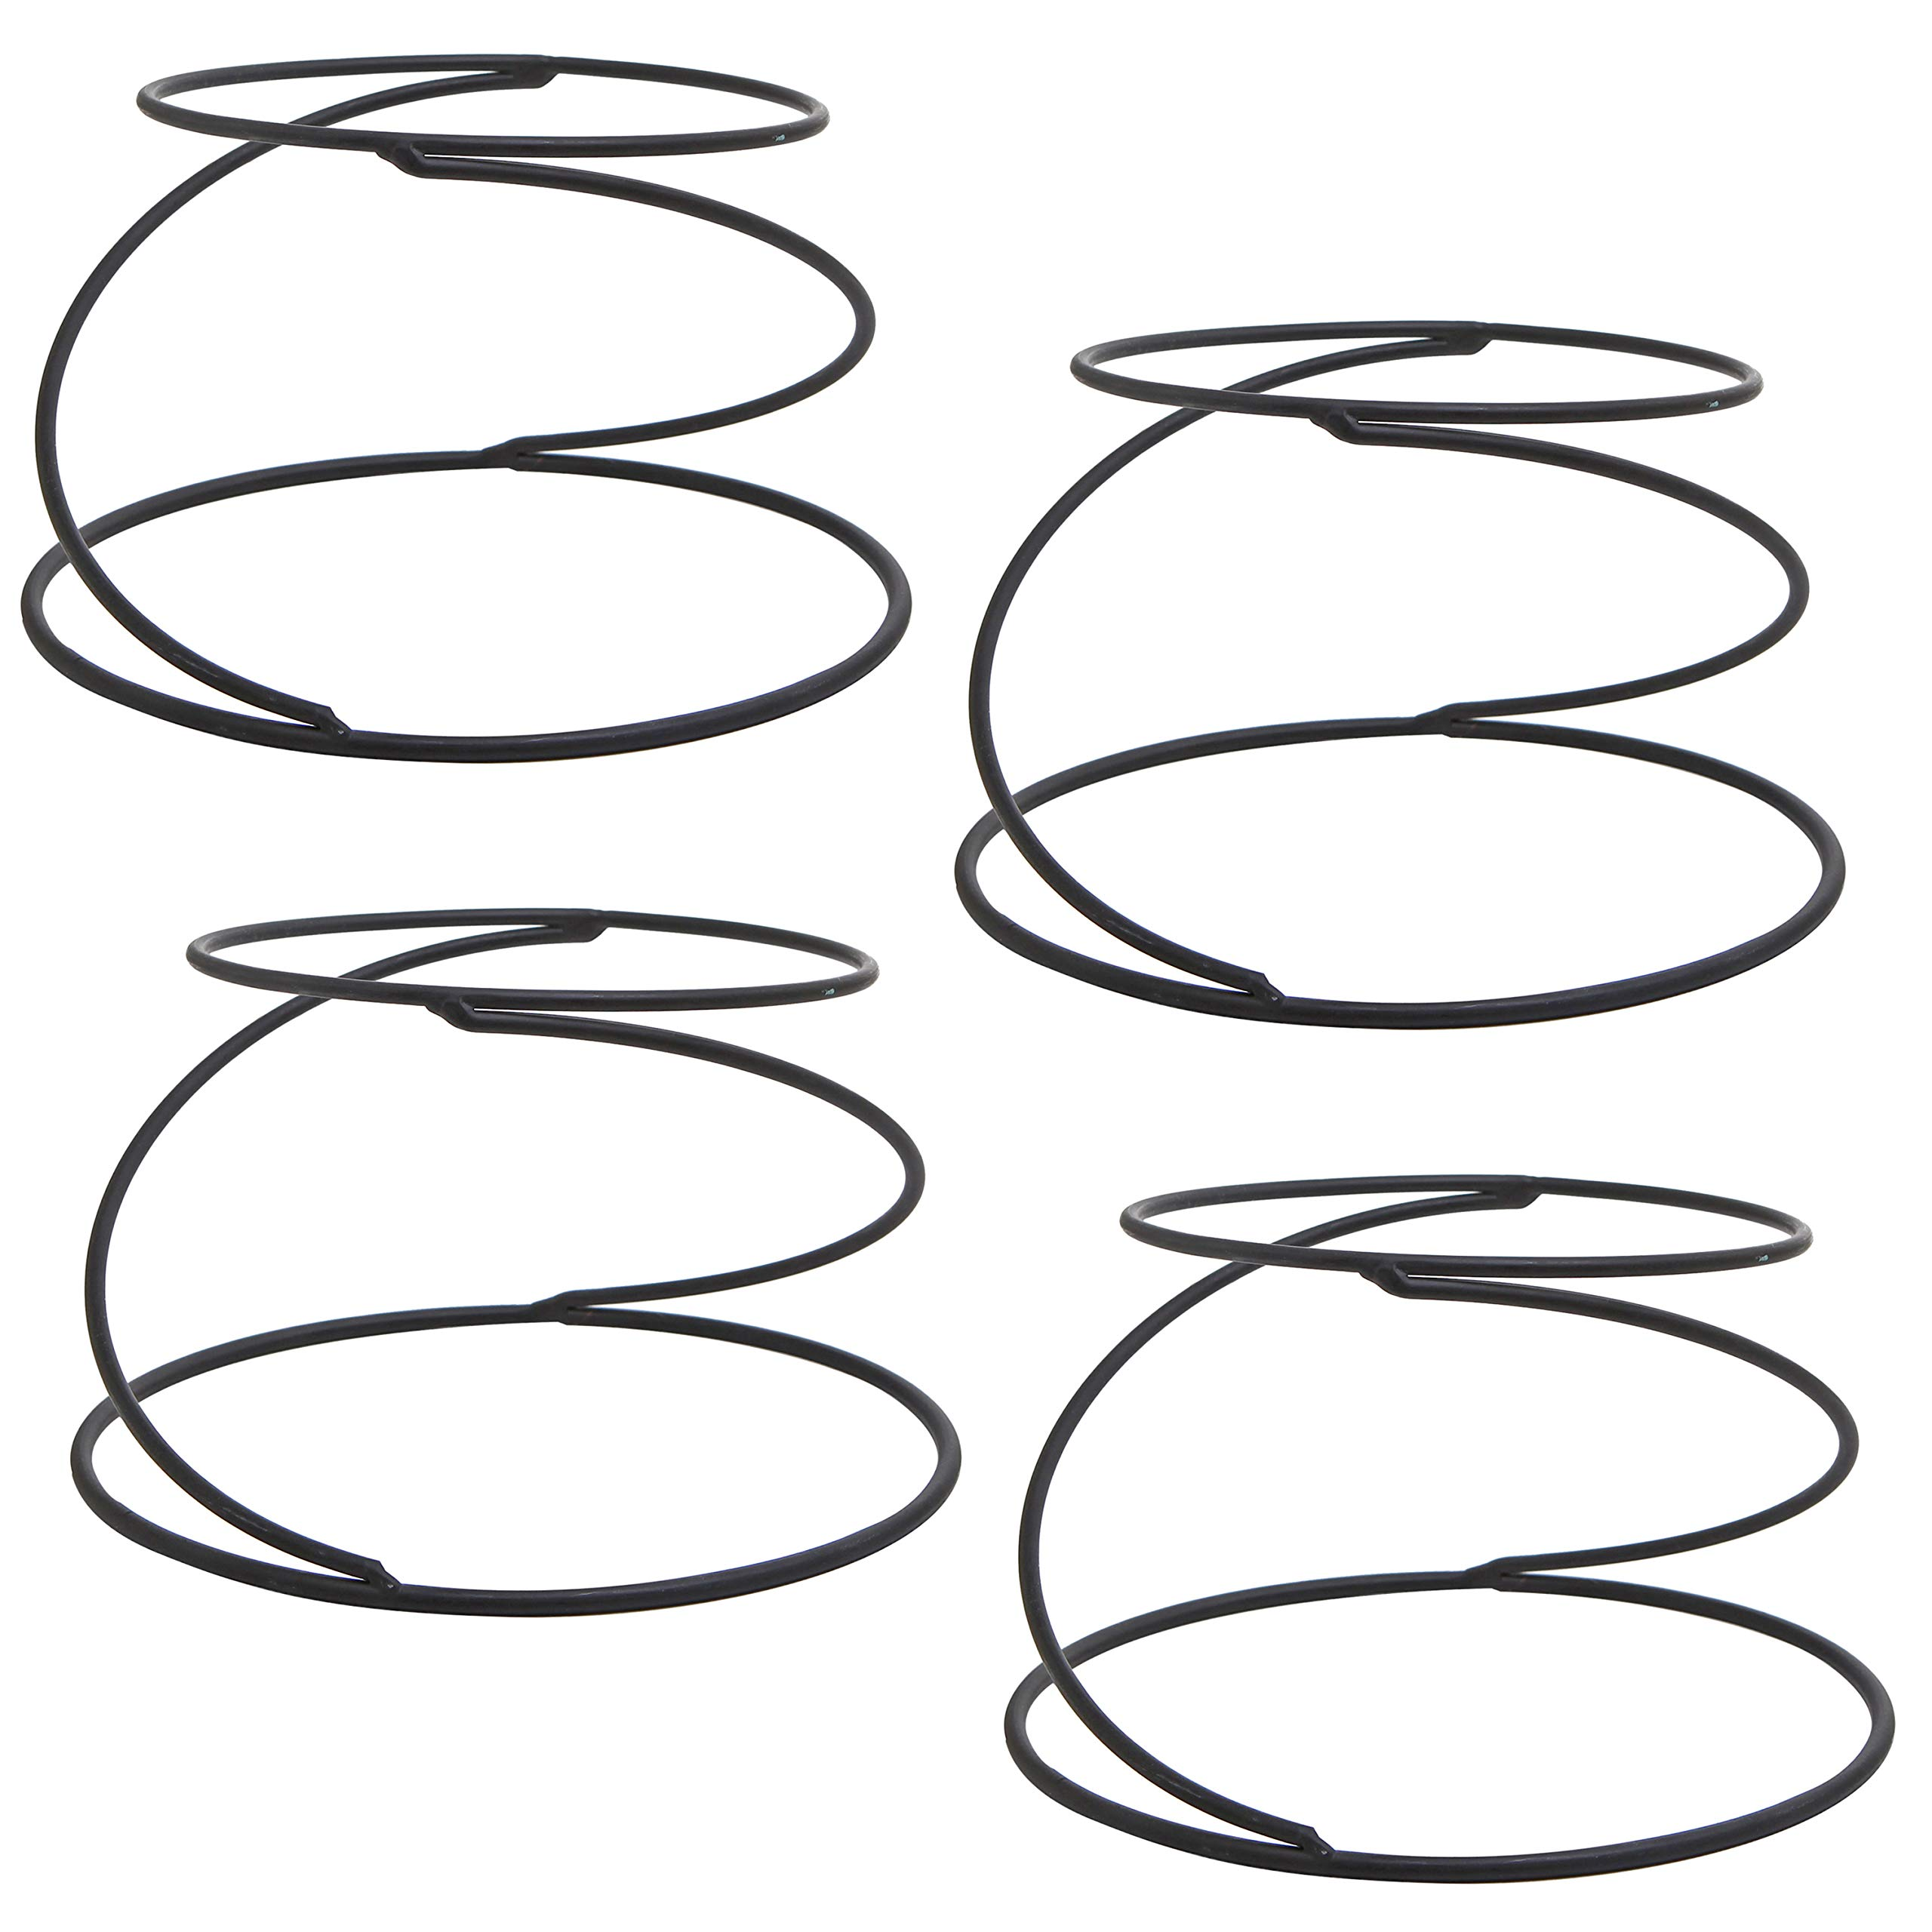 MyGift Set of 4 Metal Spiral Wire Tabletop Pizza Tray Stands, Black by MyGift (Image #7)